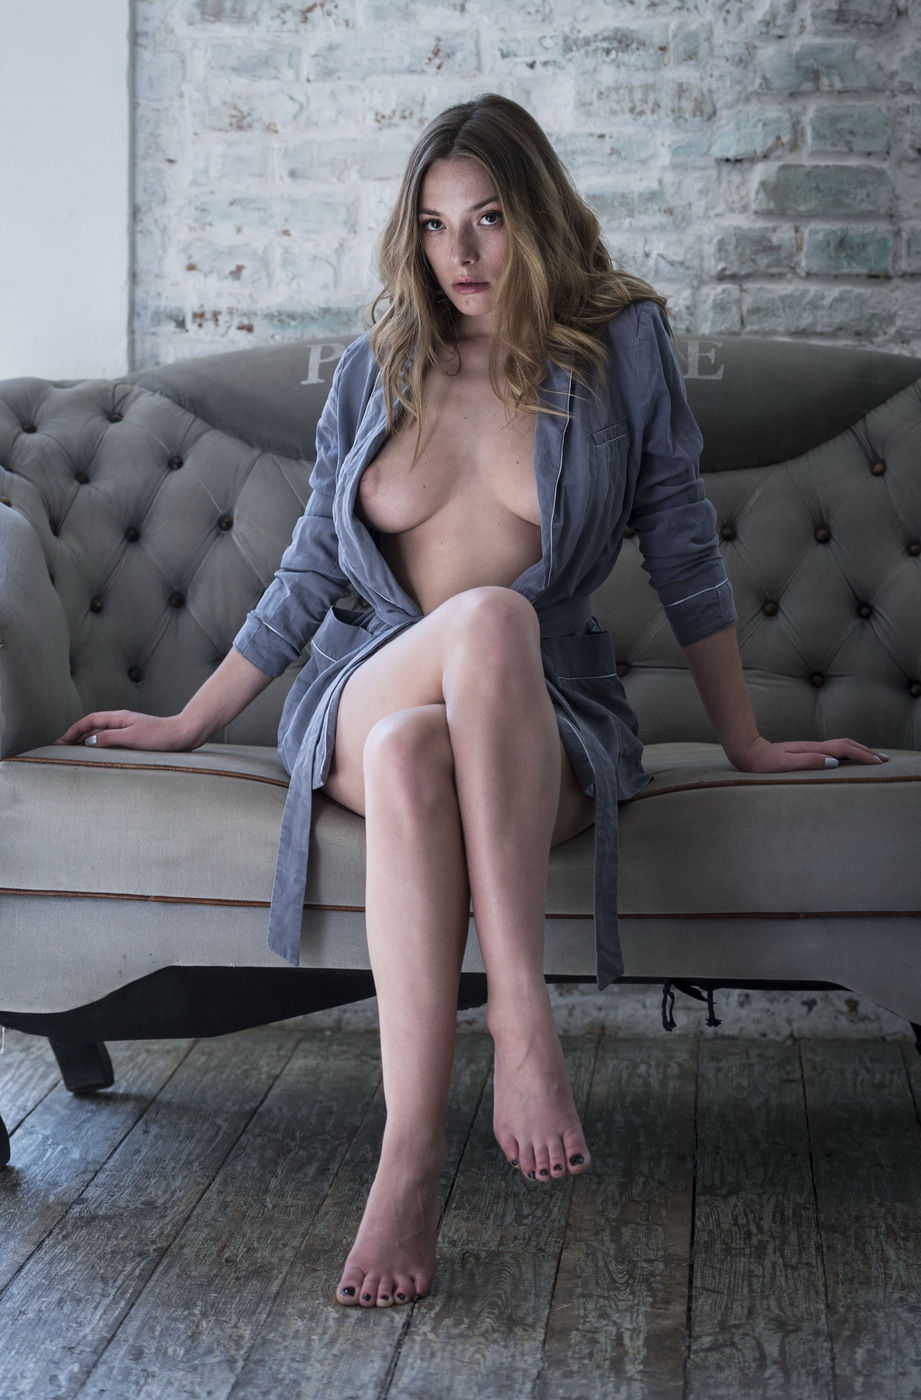 High quality nude photography